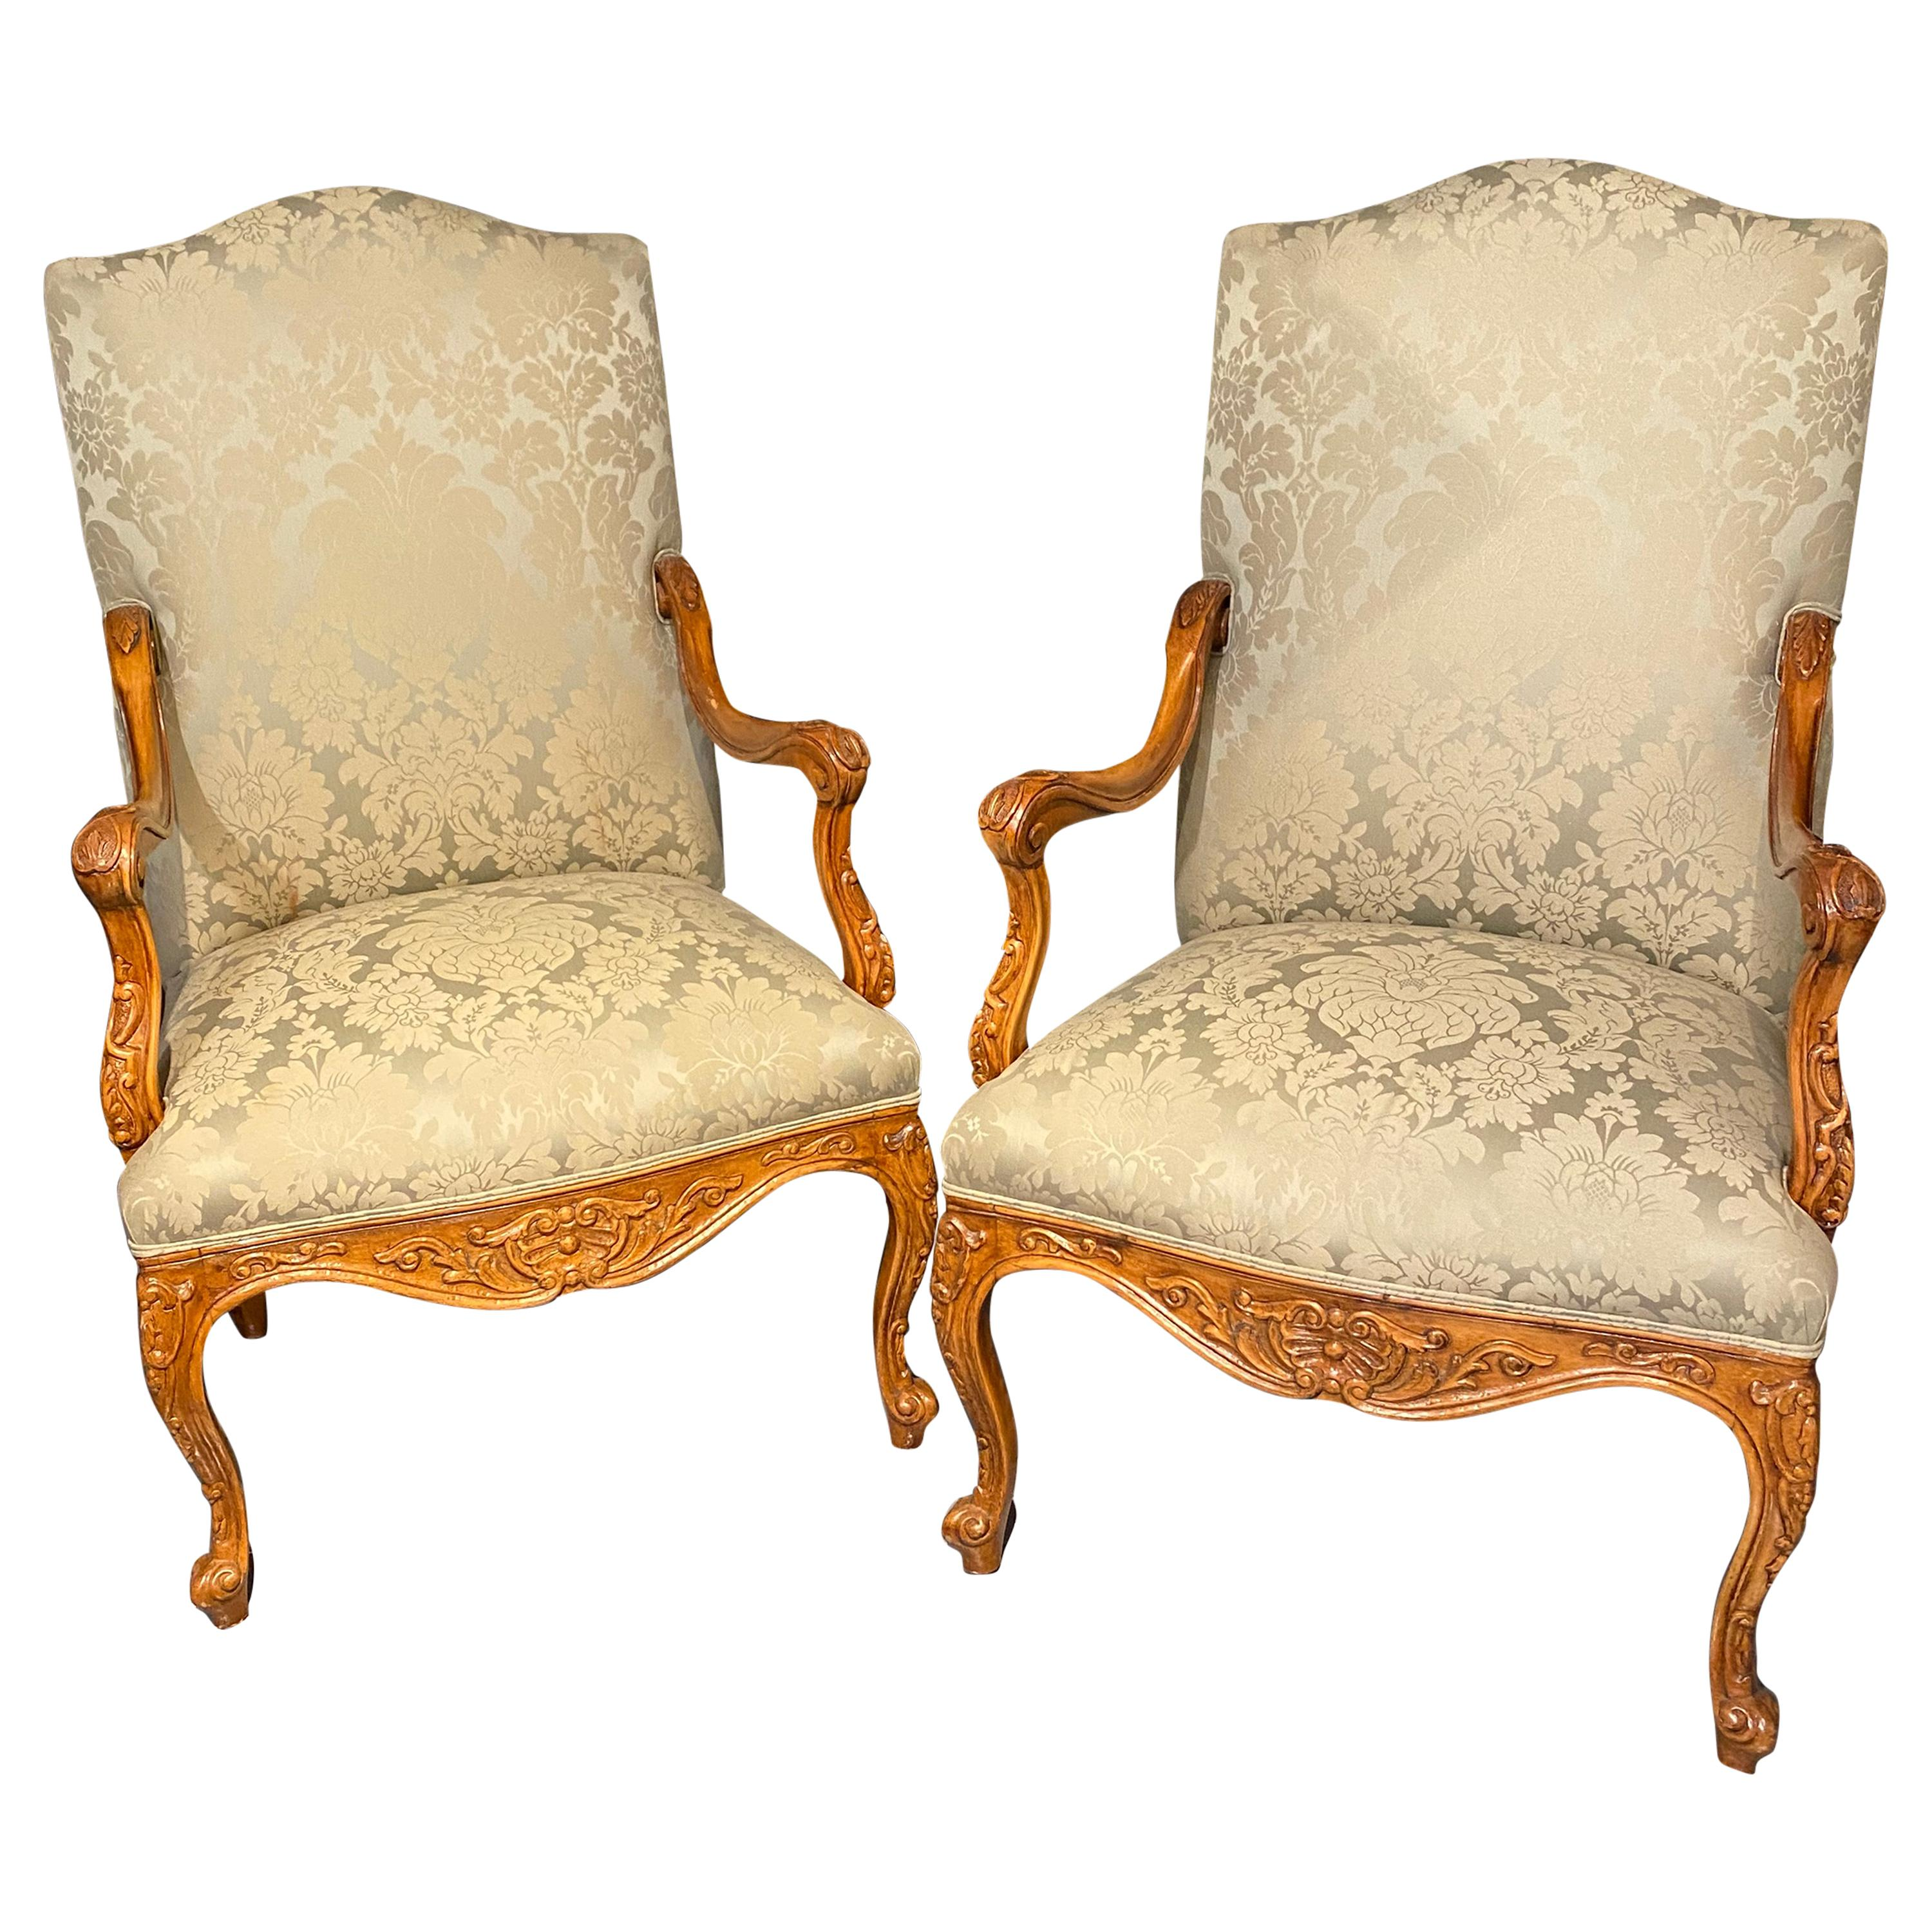 Louis XVI Style Antique Arm, Throne Chairs Finely Upholstered a Pair